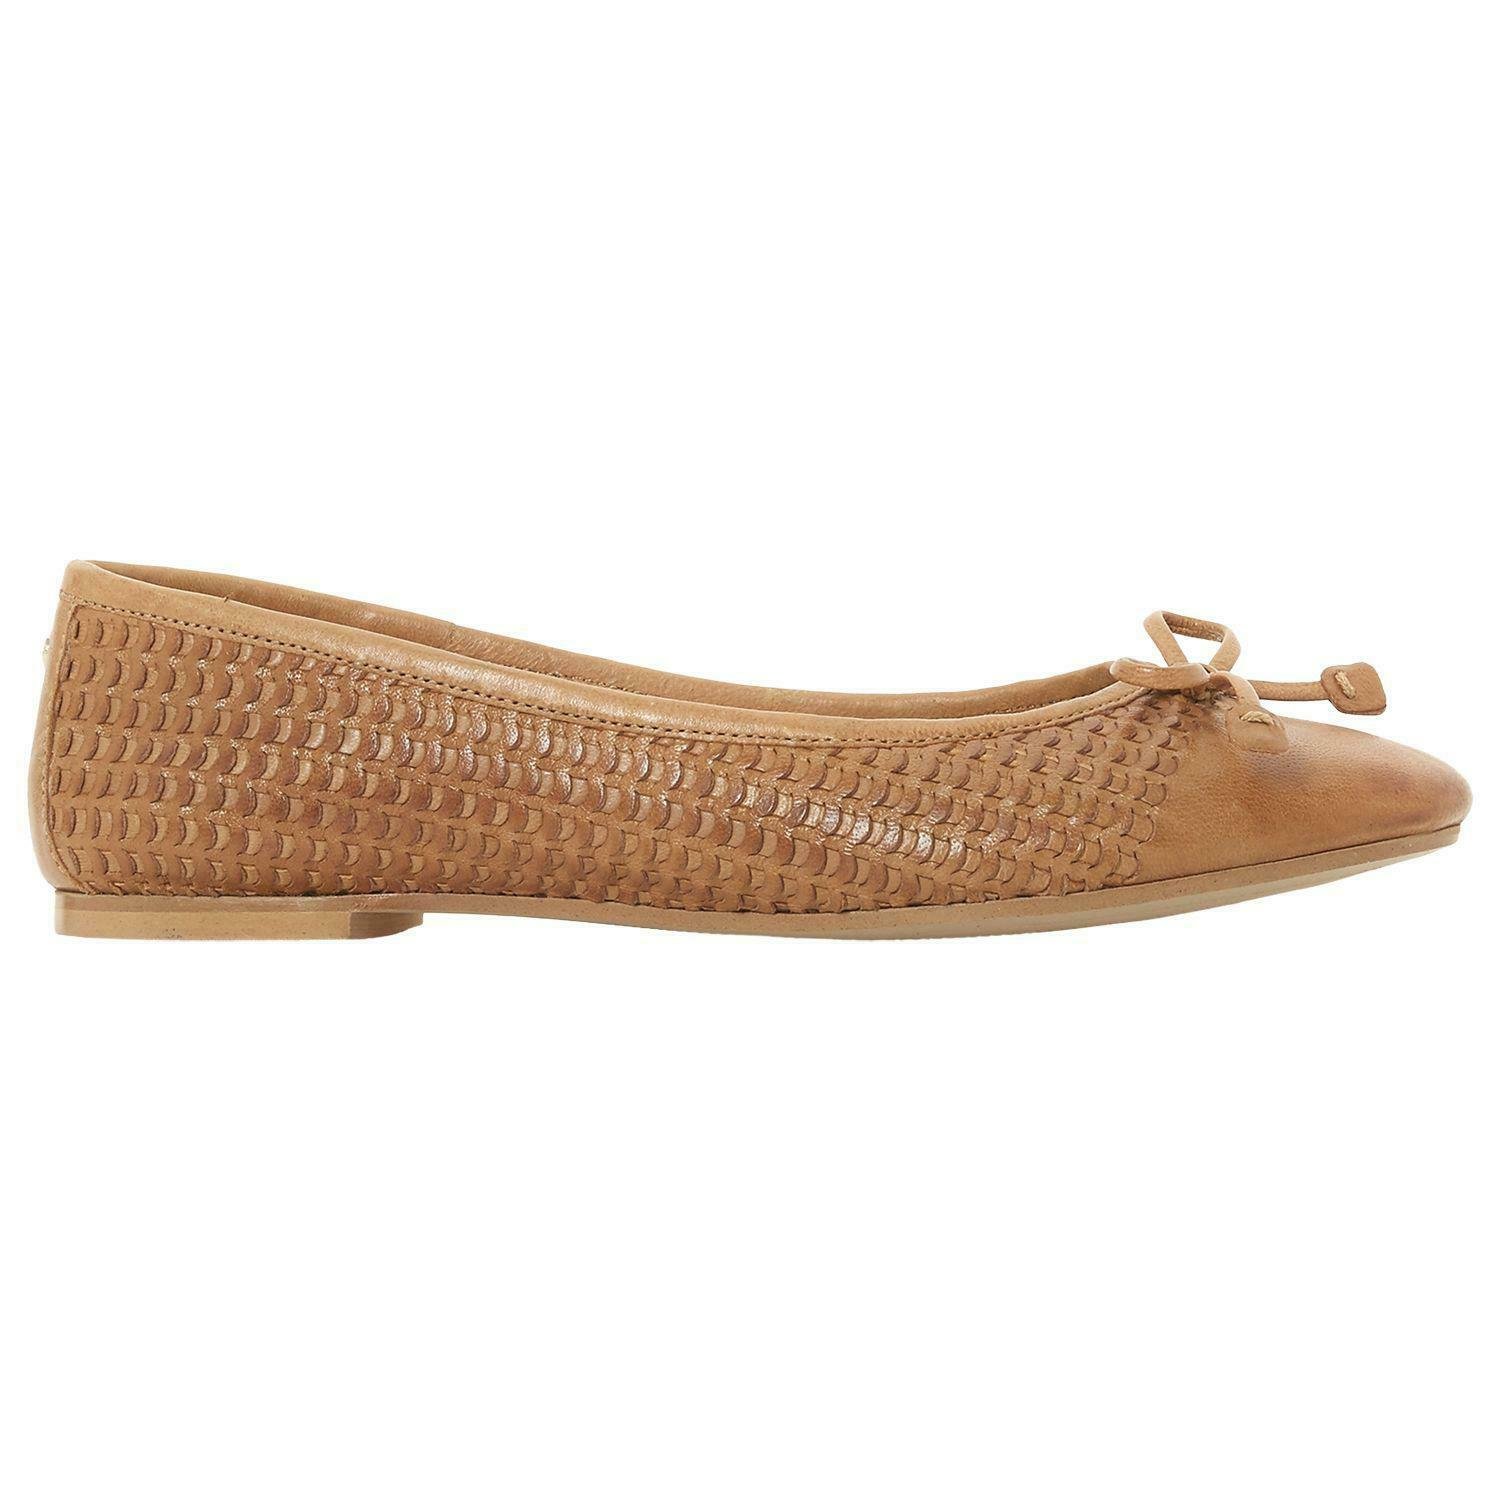 Dune Perforated Upper Bow Detail Ballet Pump UK 3 EUR 36 REF 645